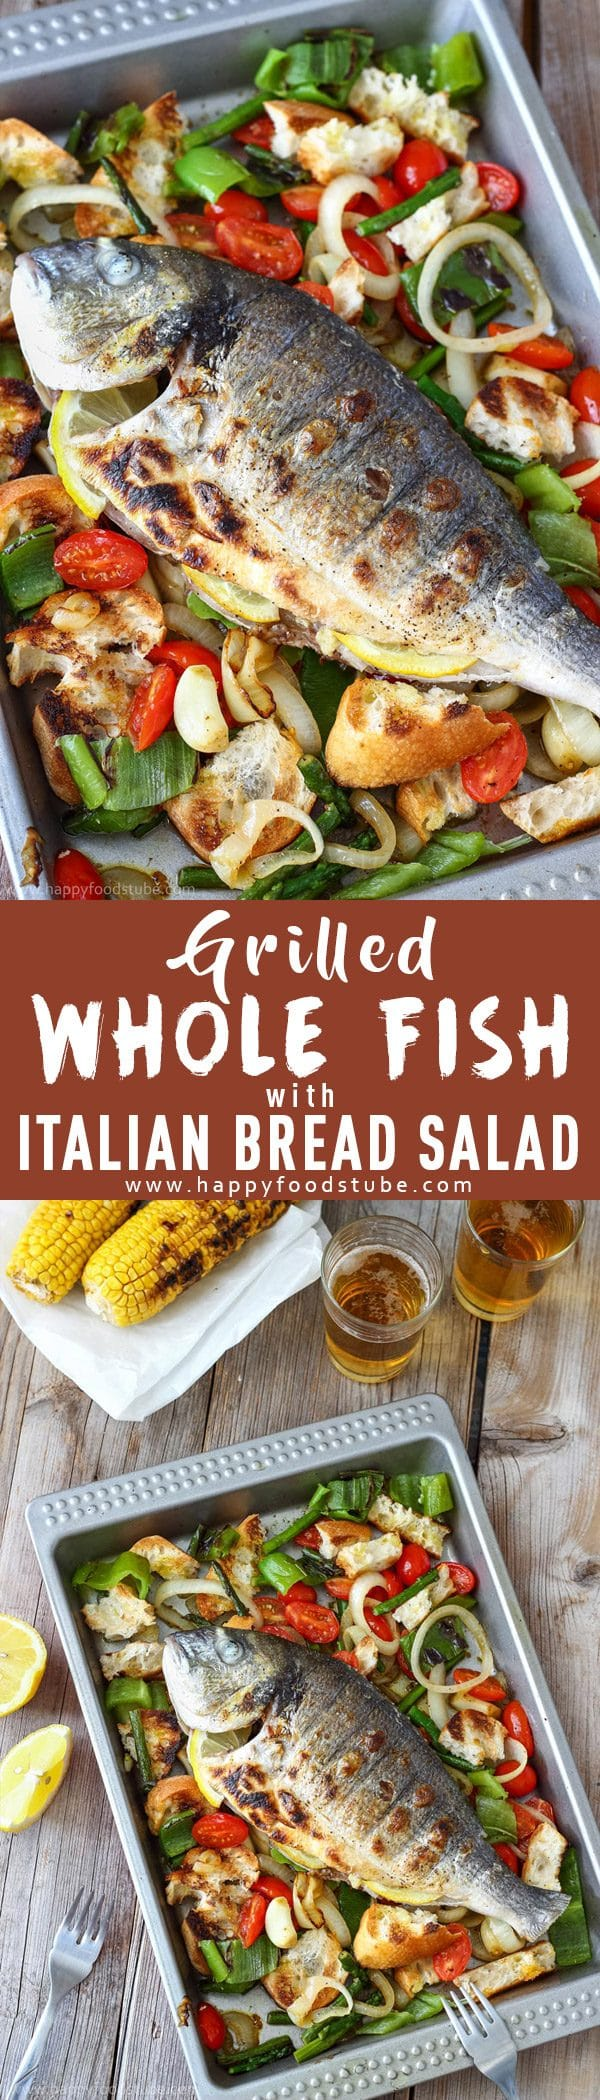 Grilled Whole Fish with Italian Bread Salad Recipe Picture